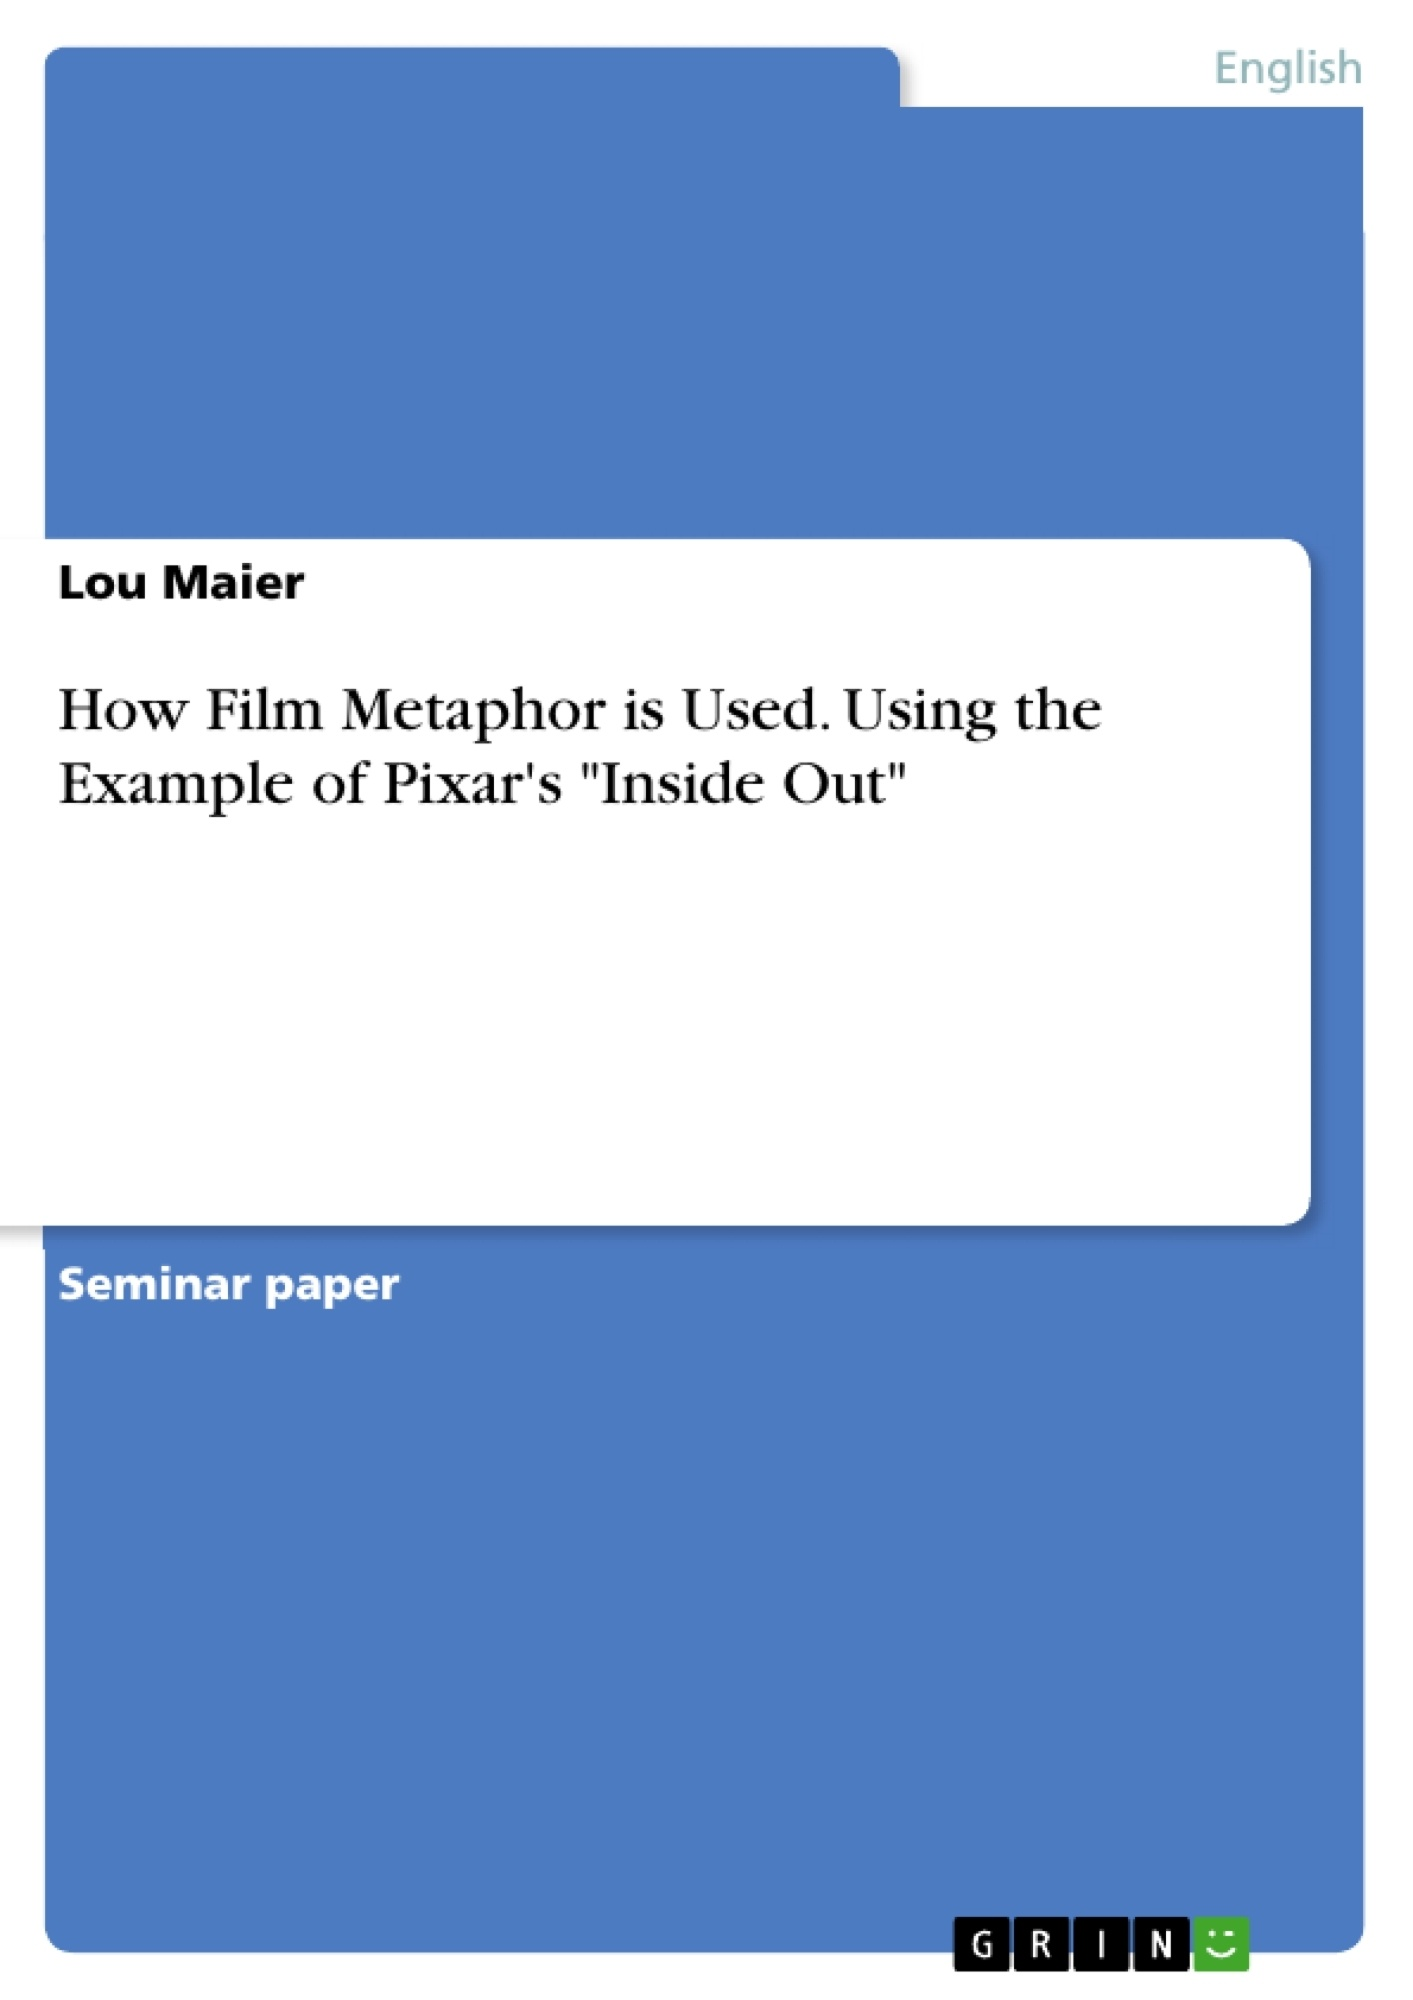 """Title: How Film Metaphor is Used. Using the Example of Pixar's """"Inside Out"""""""